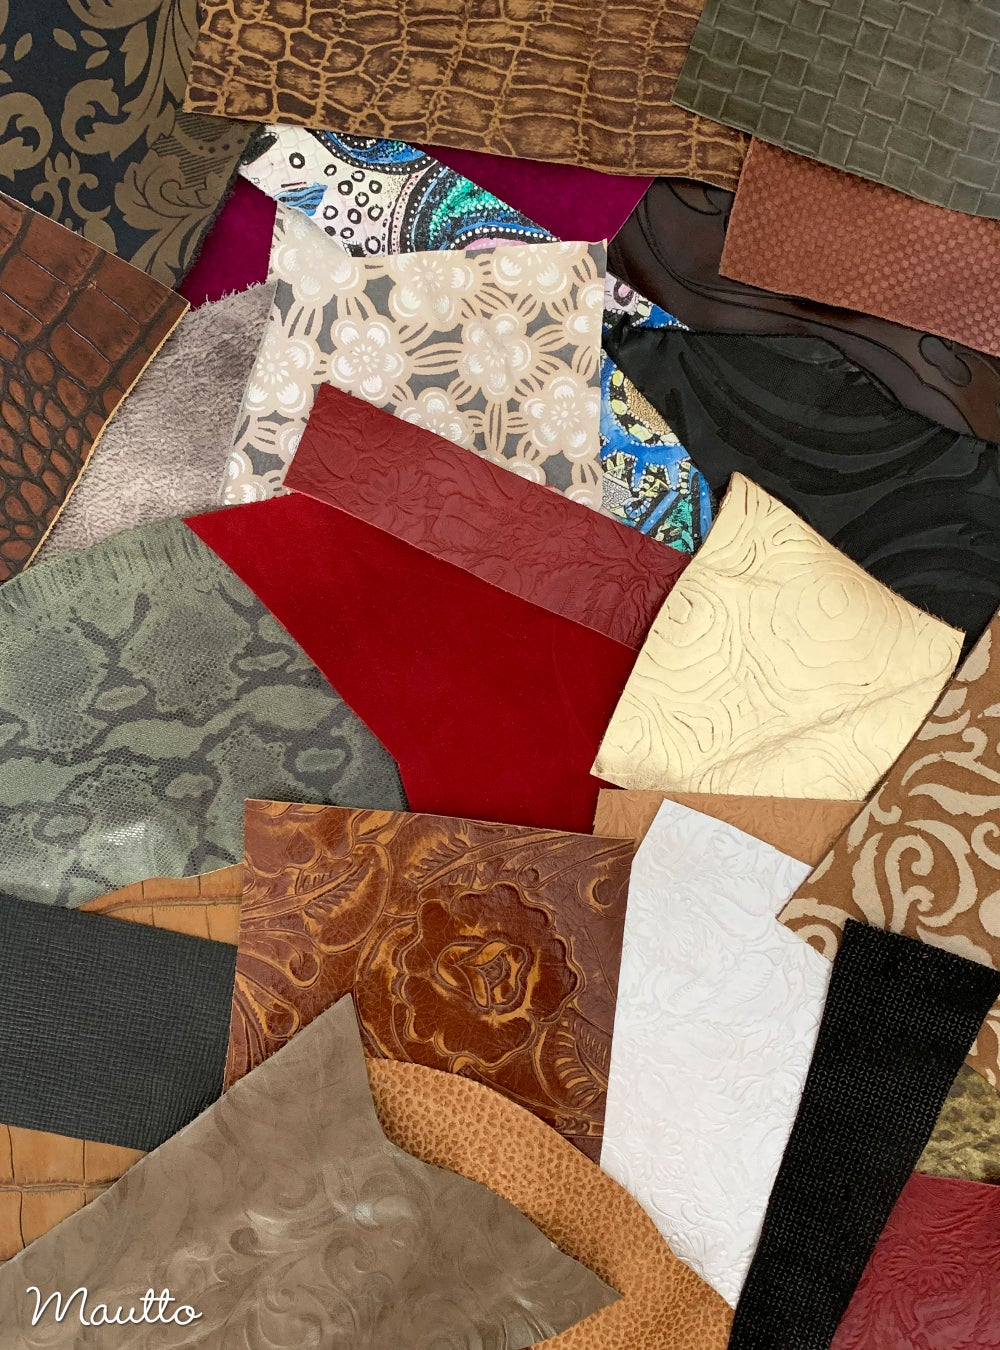 Image of Embossed & Printed Leather Pieces - 1 Pound Bag of Scraps & Remnants - for Crafts, Art, DIY Projects